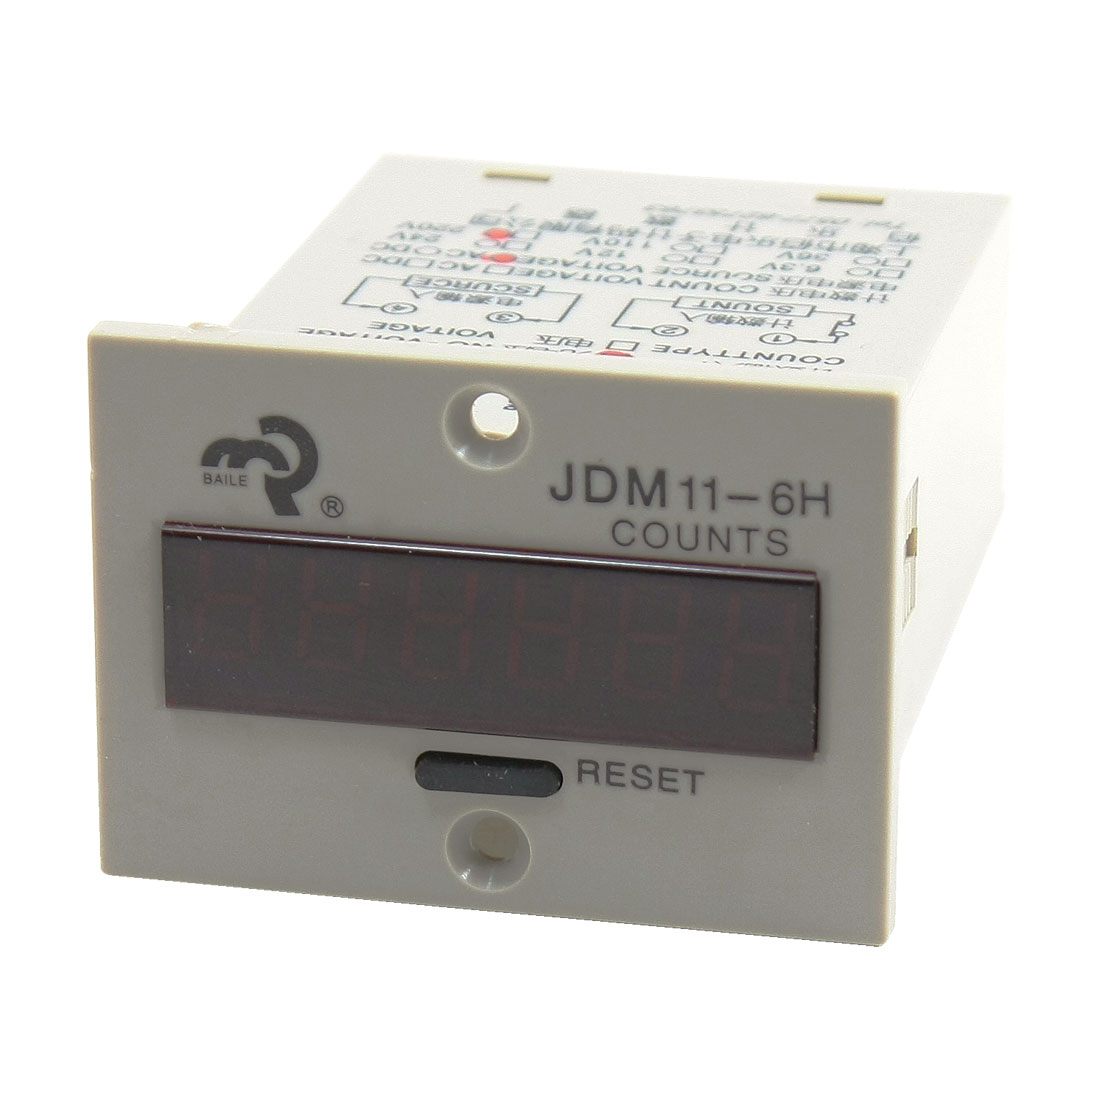 JDM11-6H Resettable 0-999999 6 Digits LED Display Digital Counter AC 220V